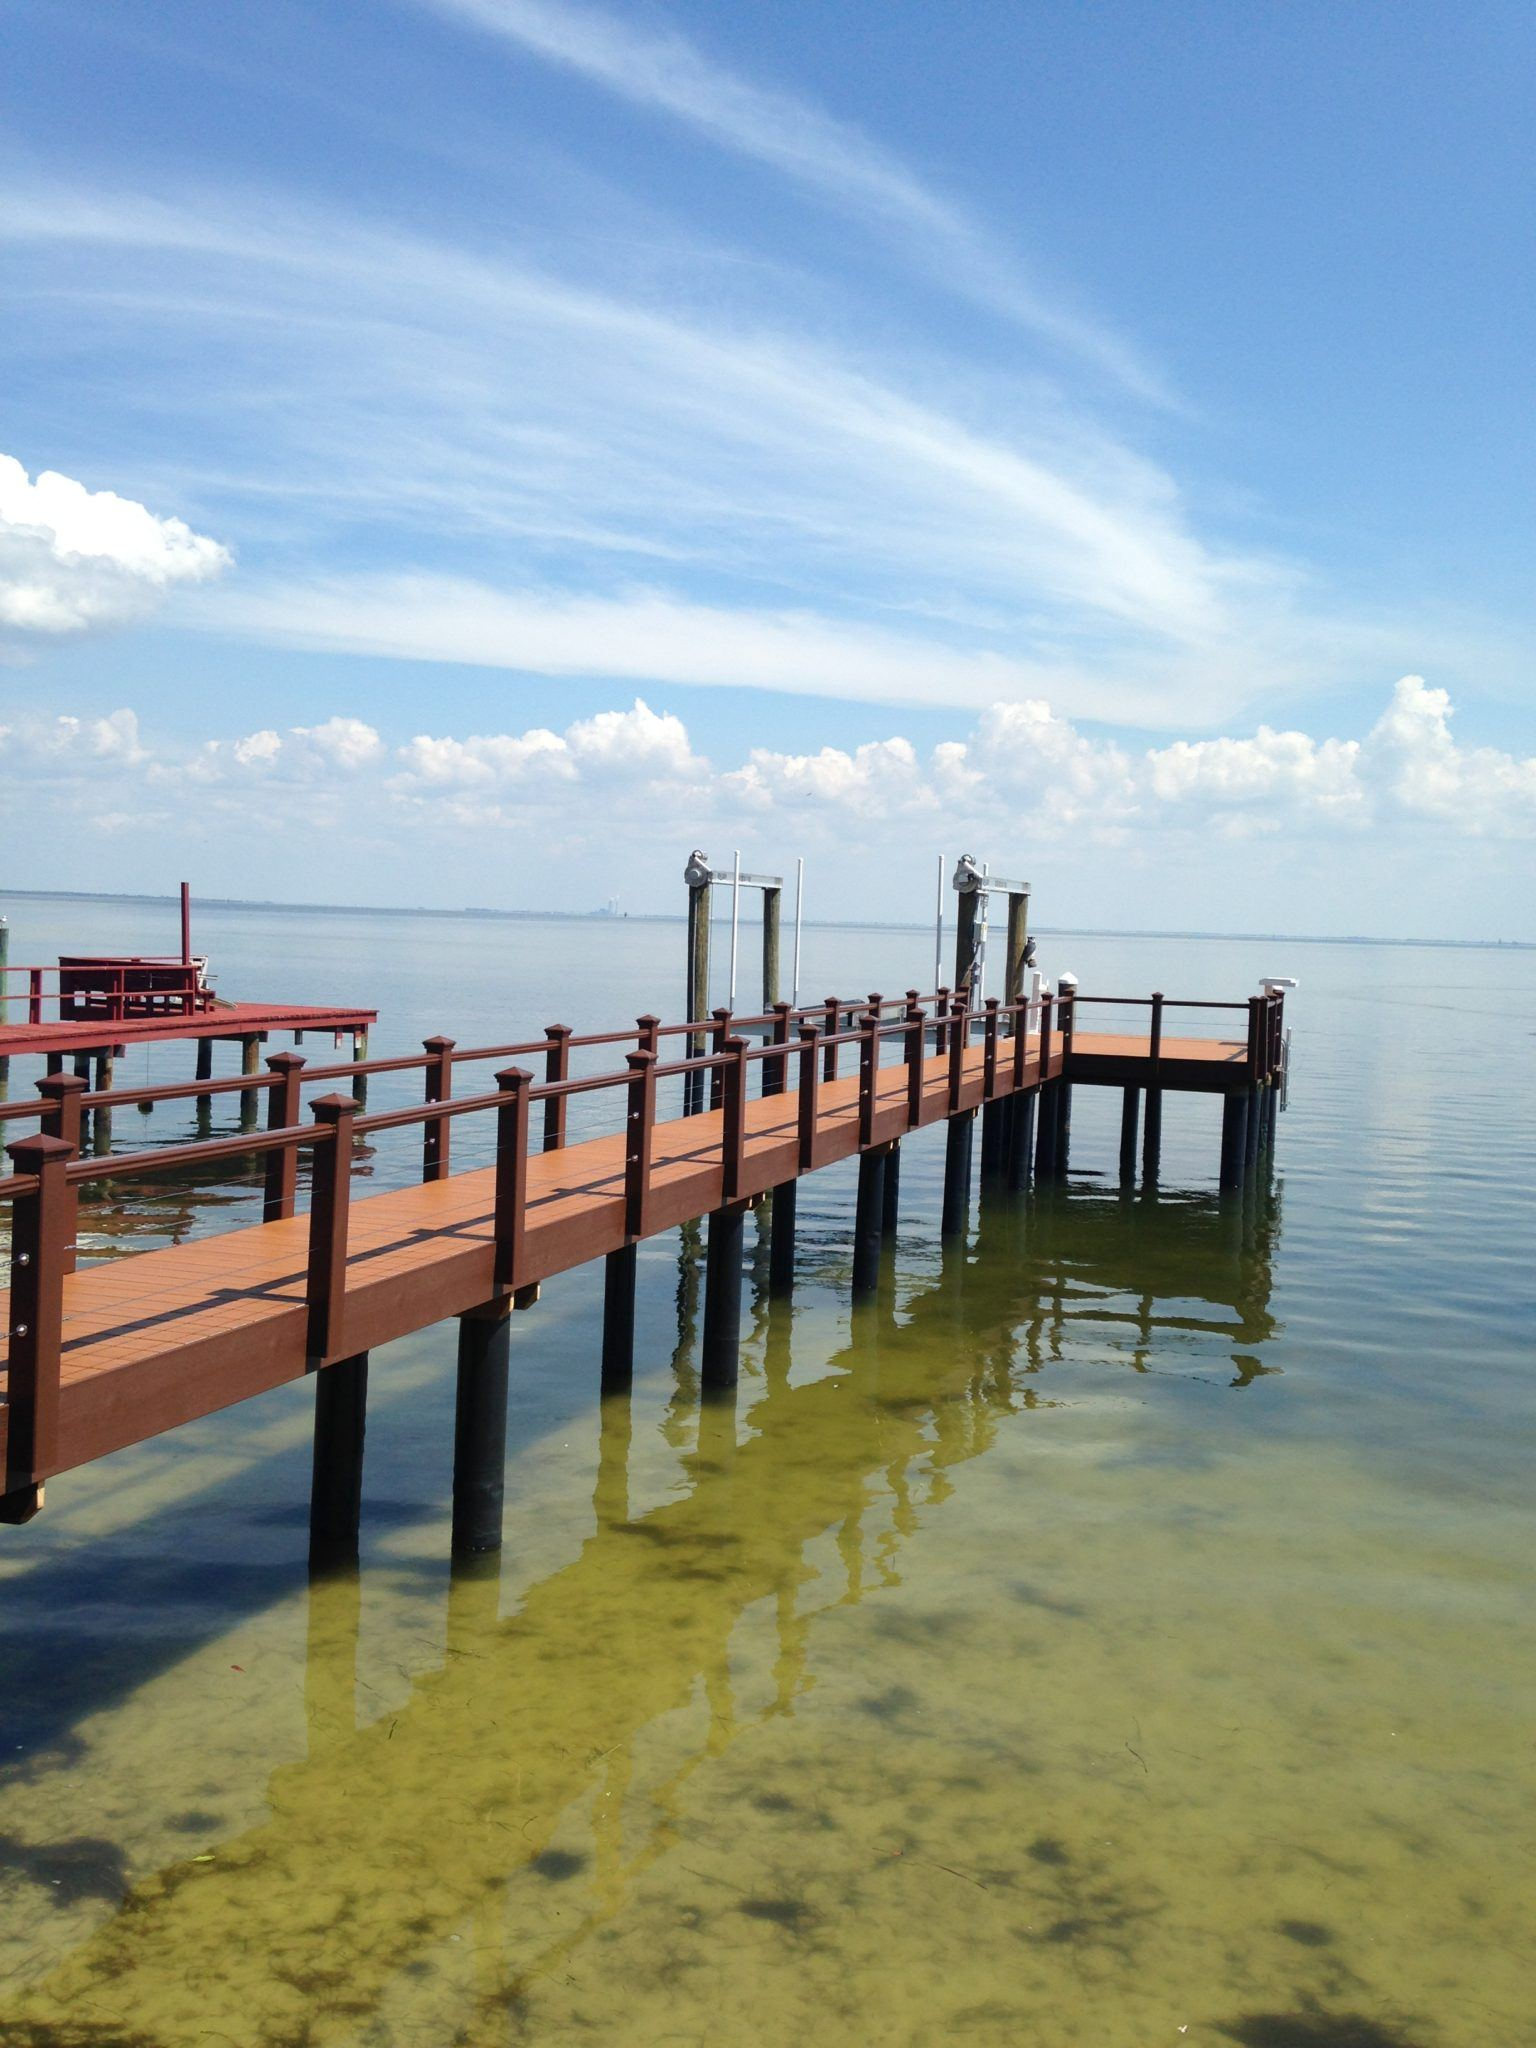 A new Trex dock with Trex composite handrail with cable railing and a boat lift on the water